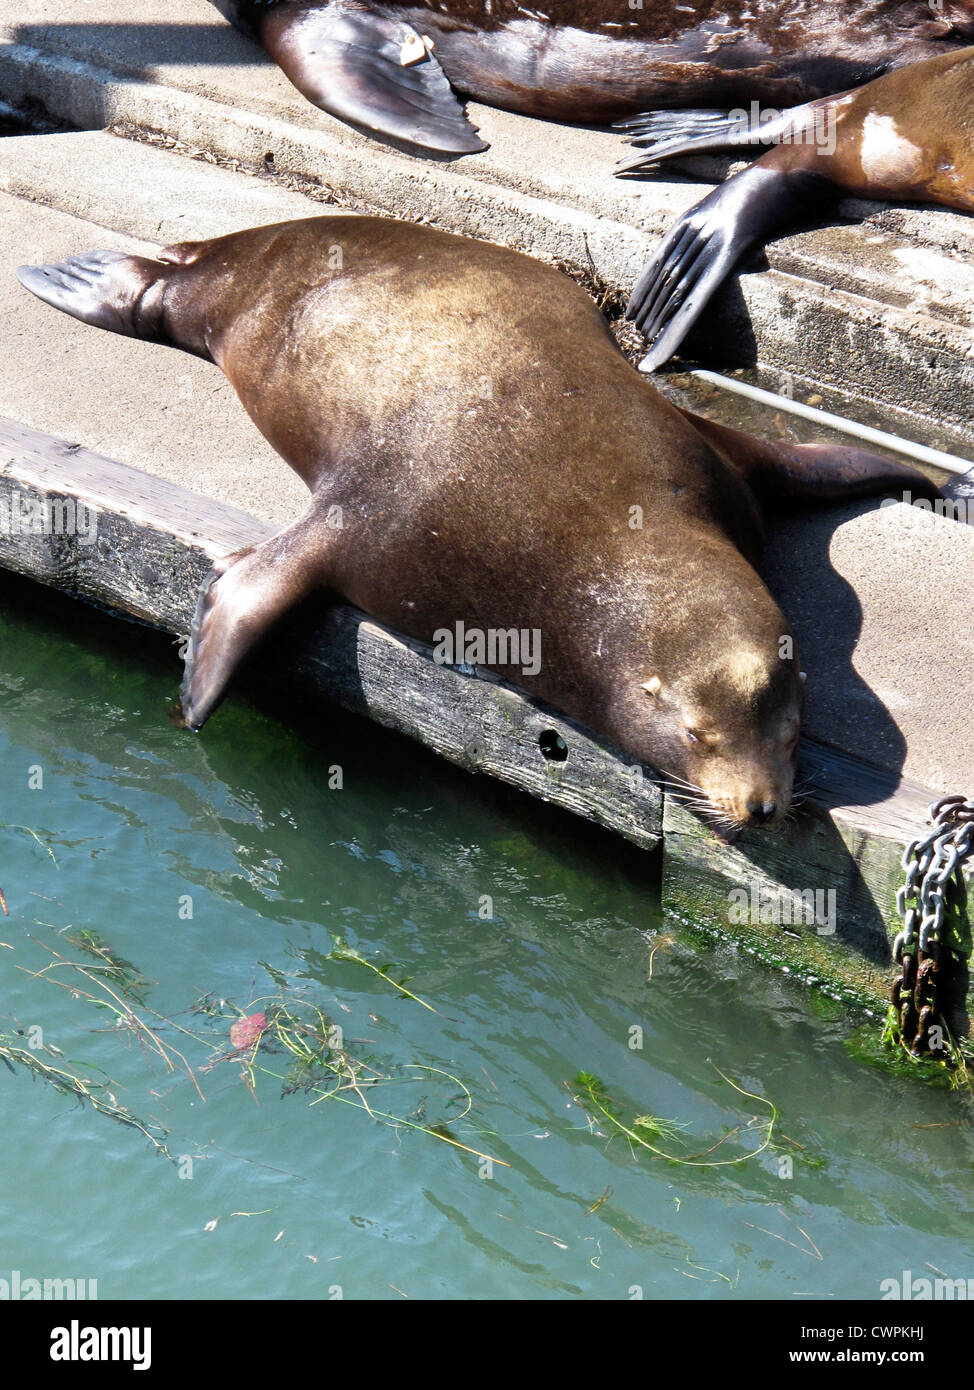 plump contented sea lion snoozing in sun on floating pier at south mooring basin Astoria waterfront Oregon - Stock Image